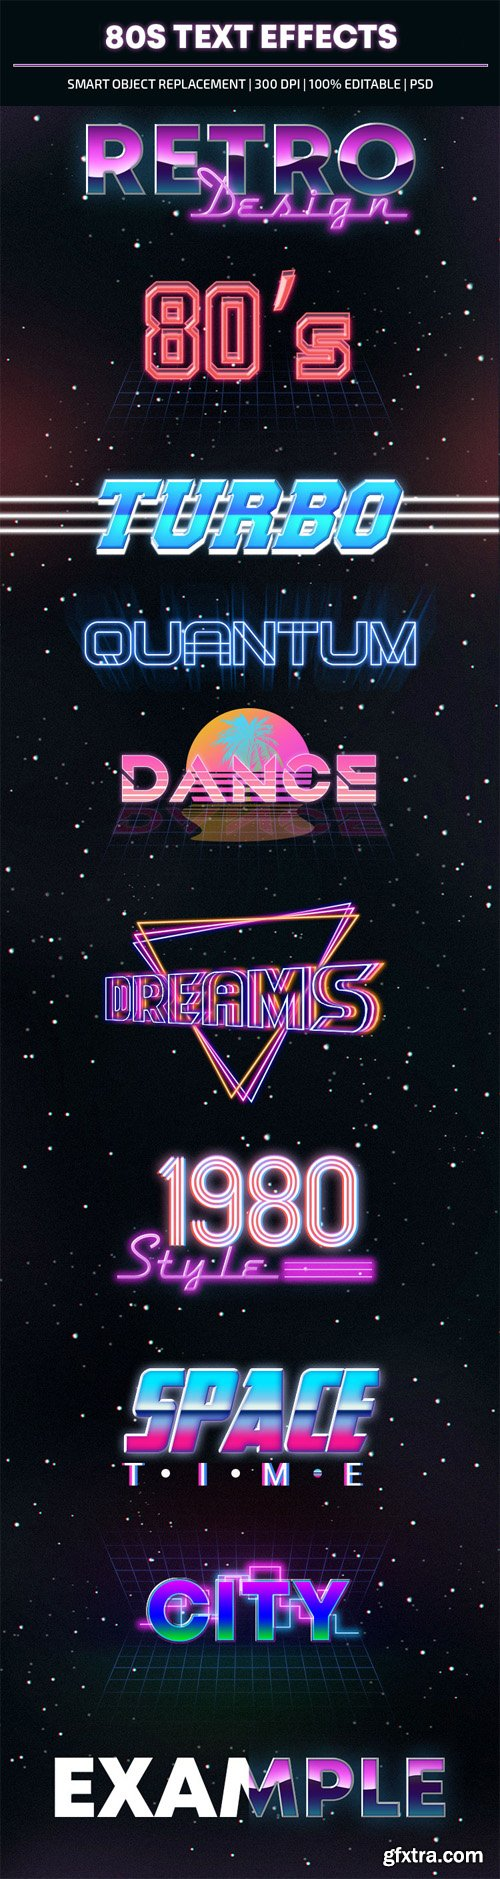 10 (80s) Text Effects for Photoshop